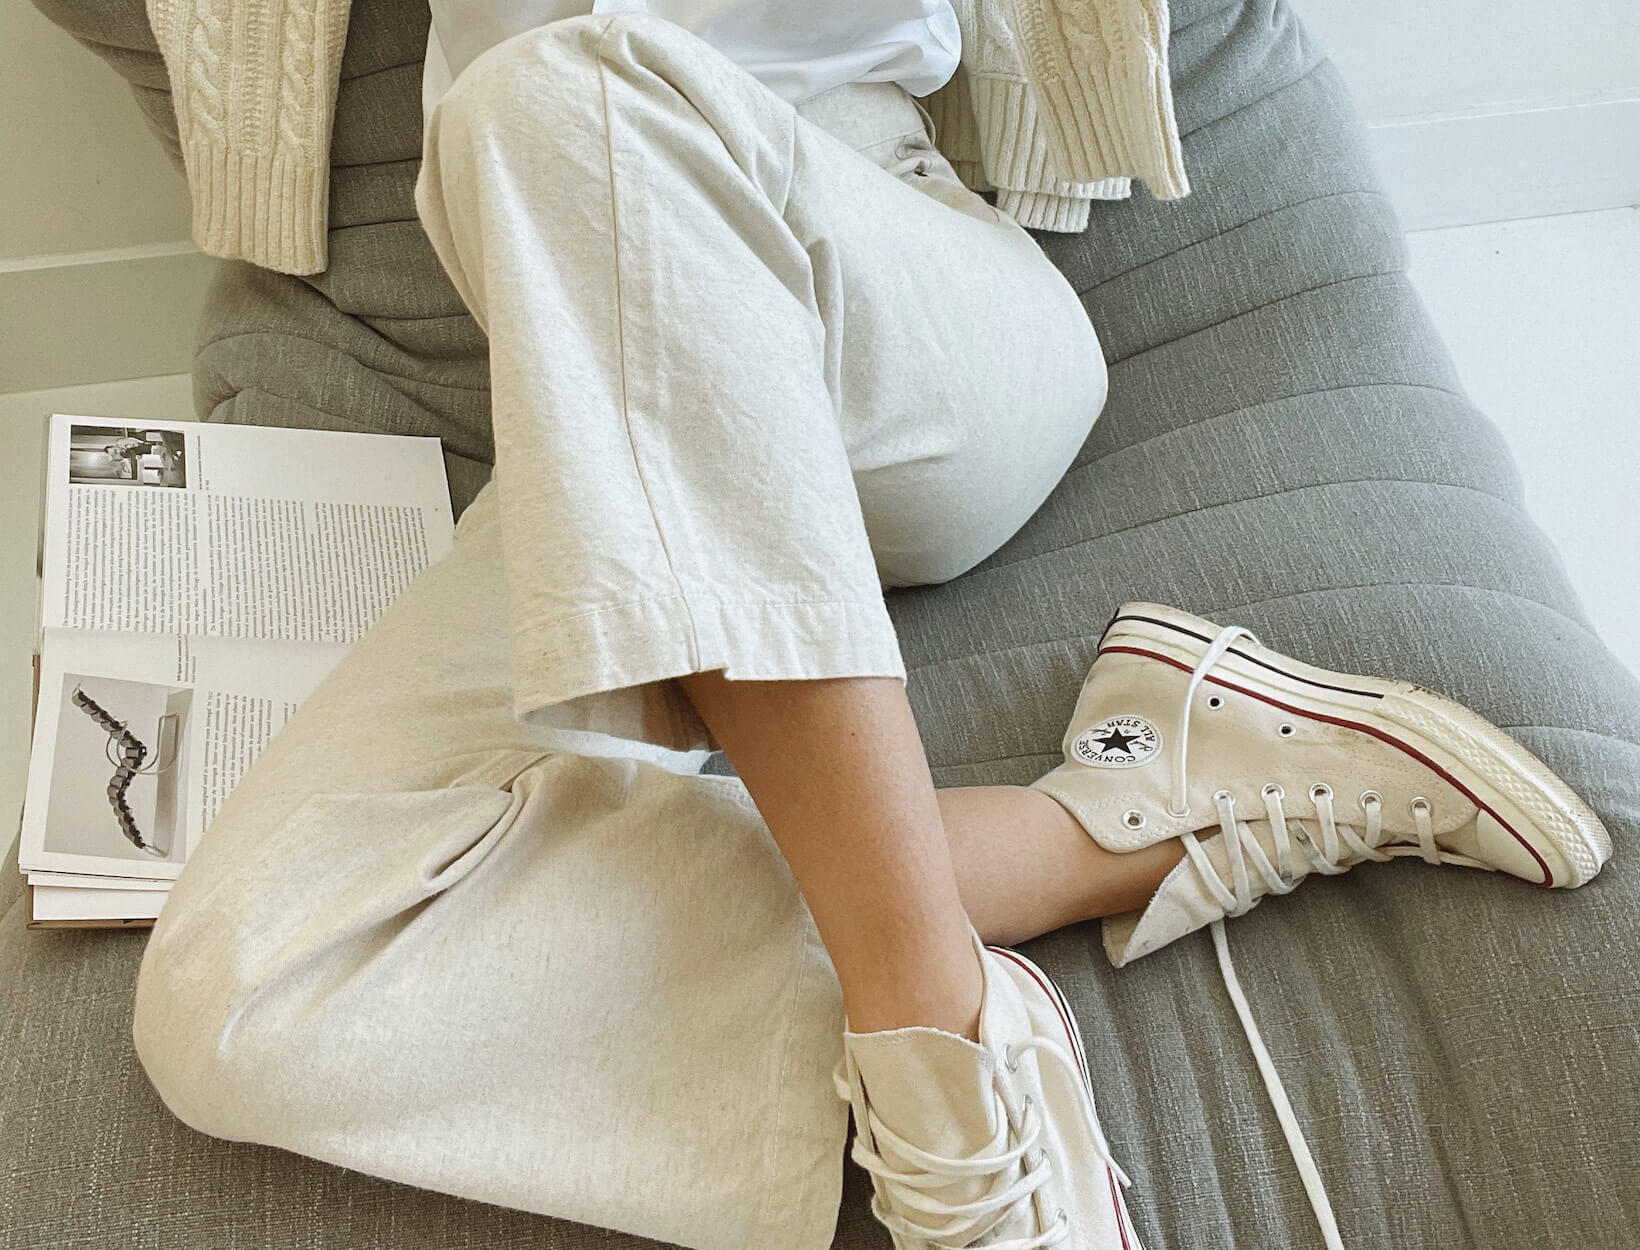 woman in neutral outfit with sneakers